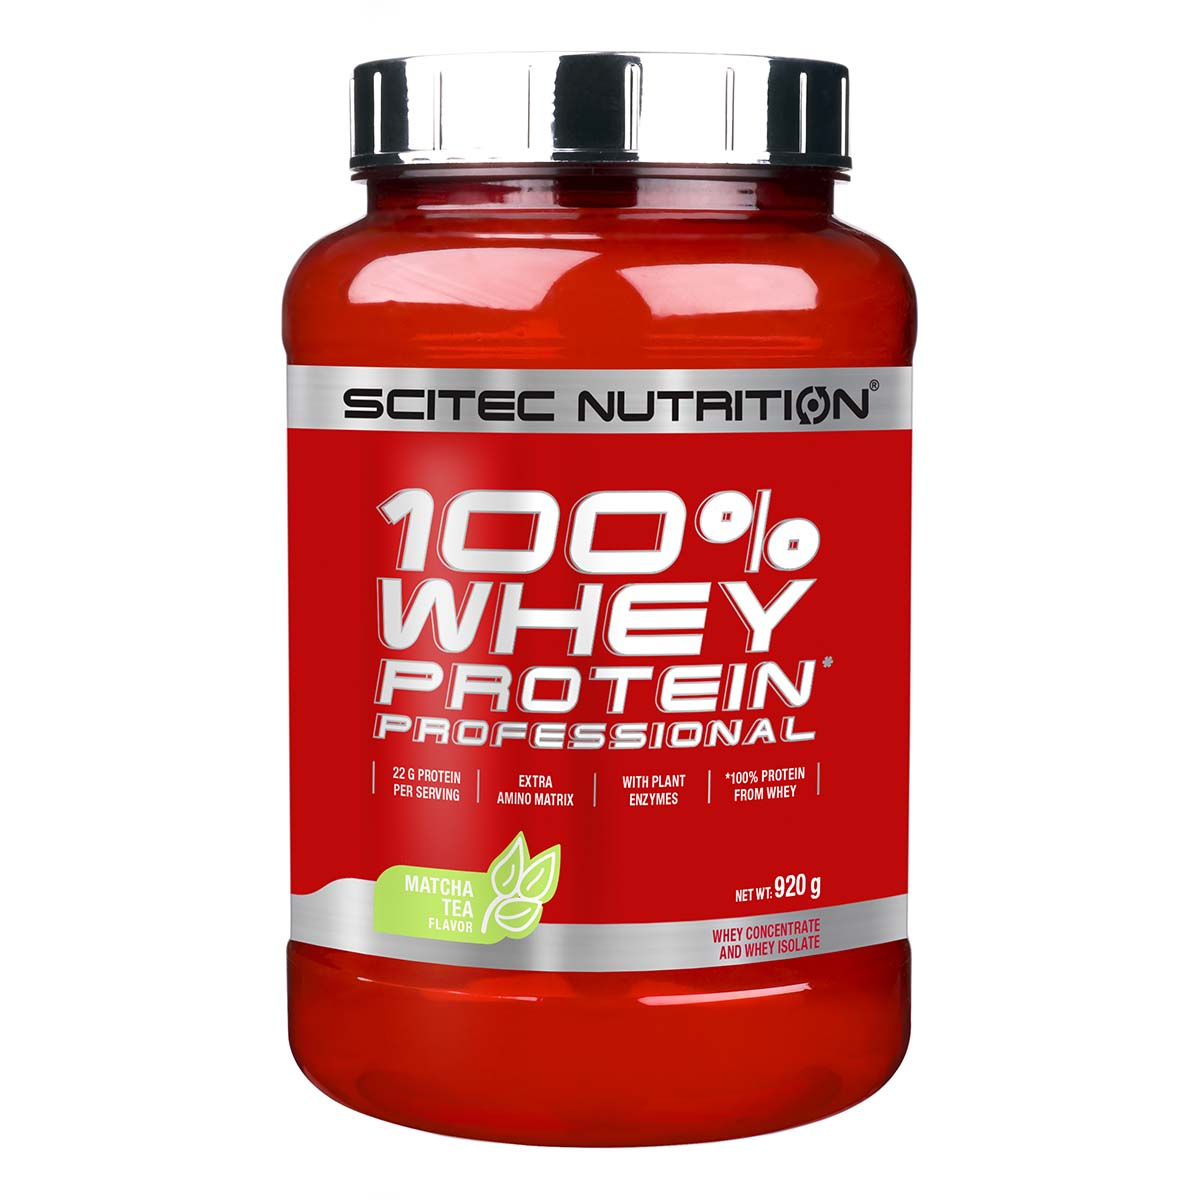 100% Whey Protein Professional Winter Edition, 920g